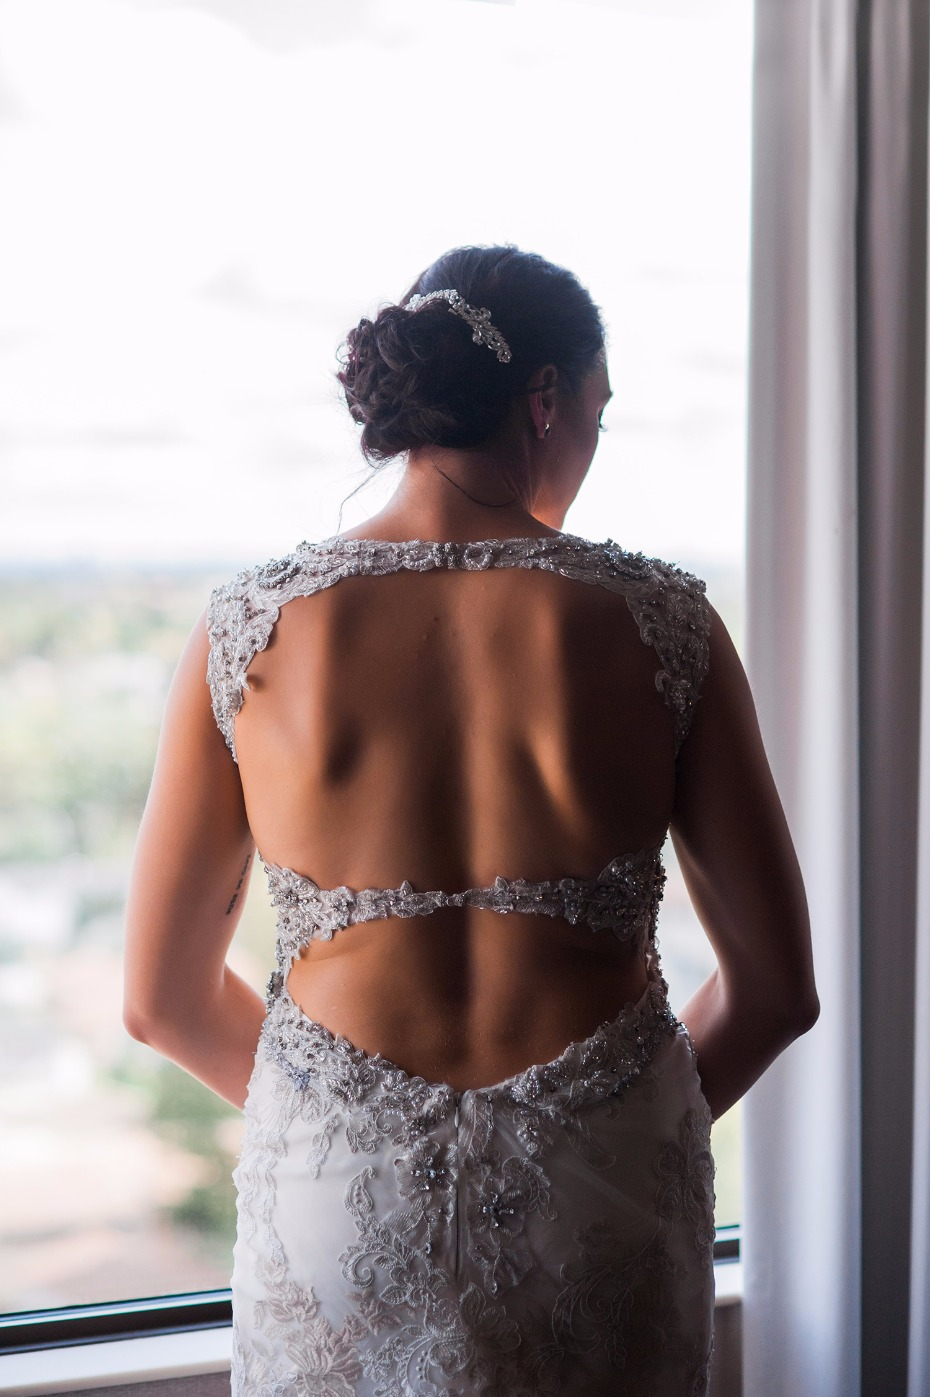 Gorgeous open back wedding dress from Maggie Sotterro